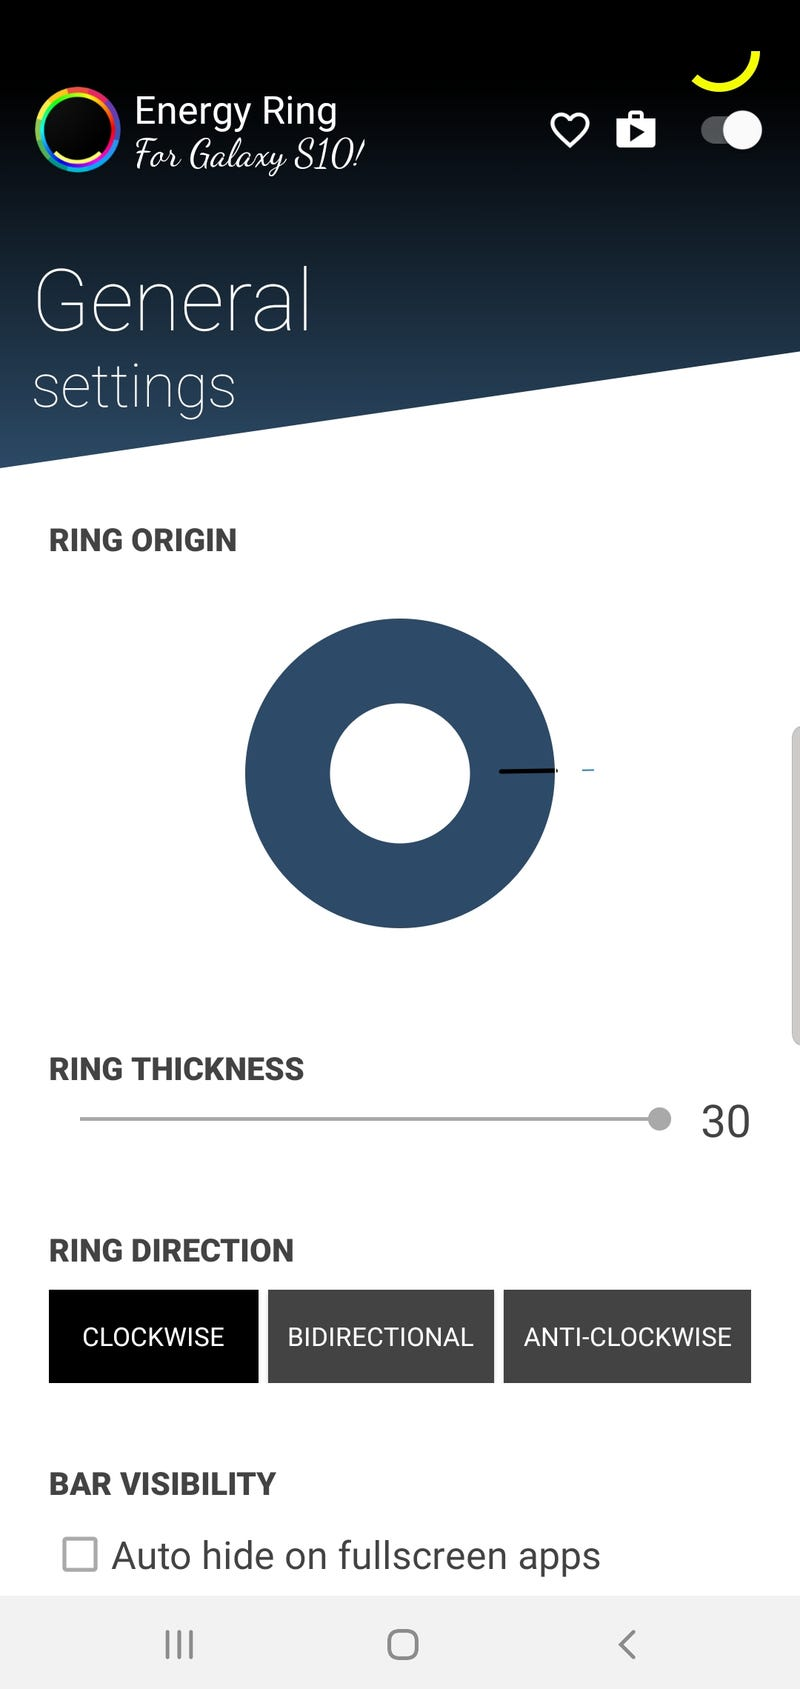 This Energy Ring App Might Be the Best Use of the Galaxy